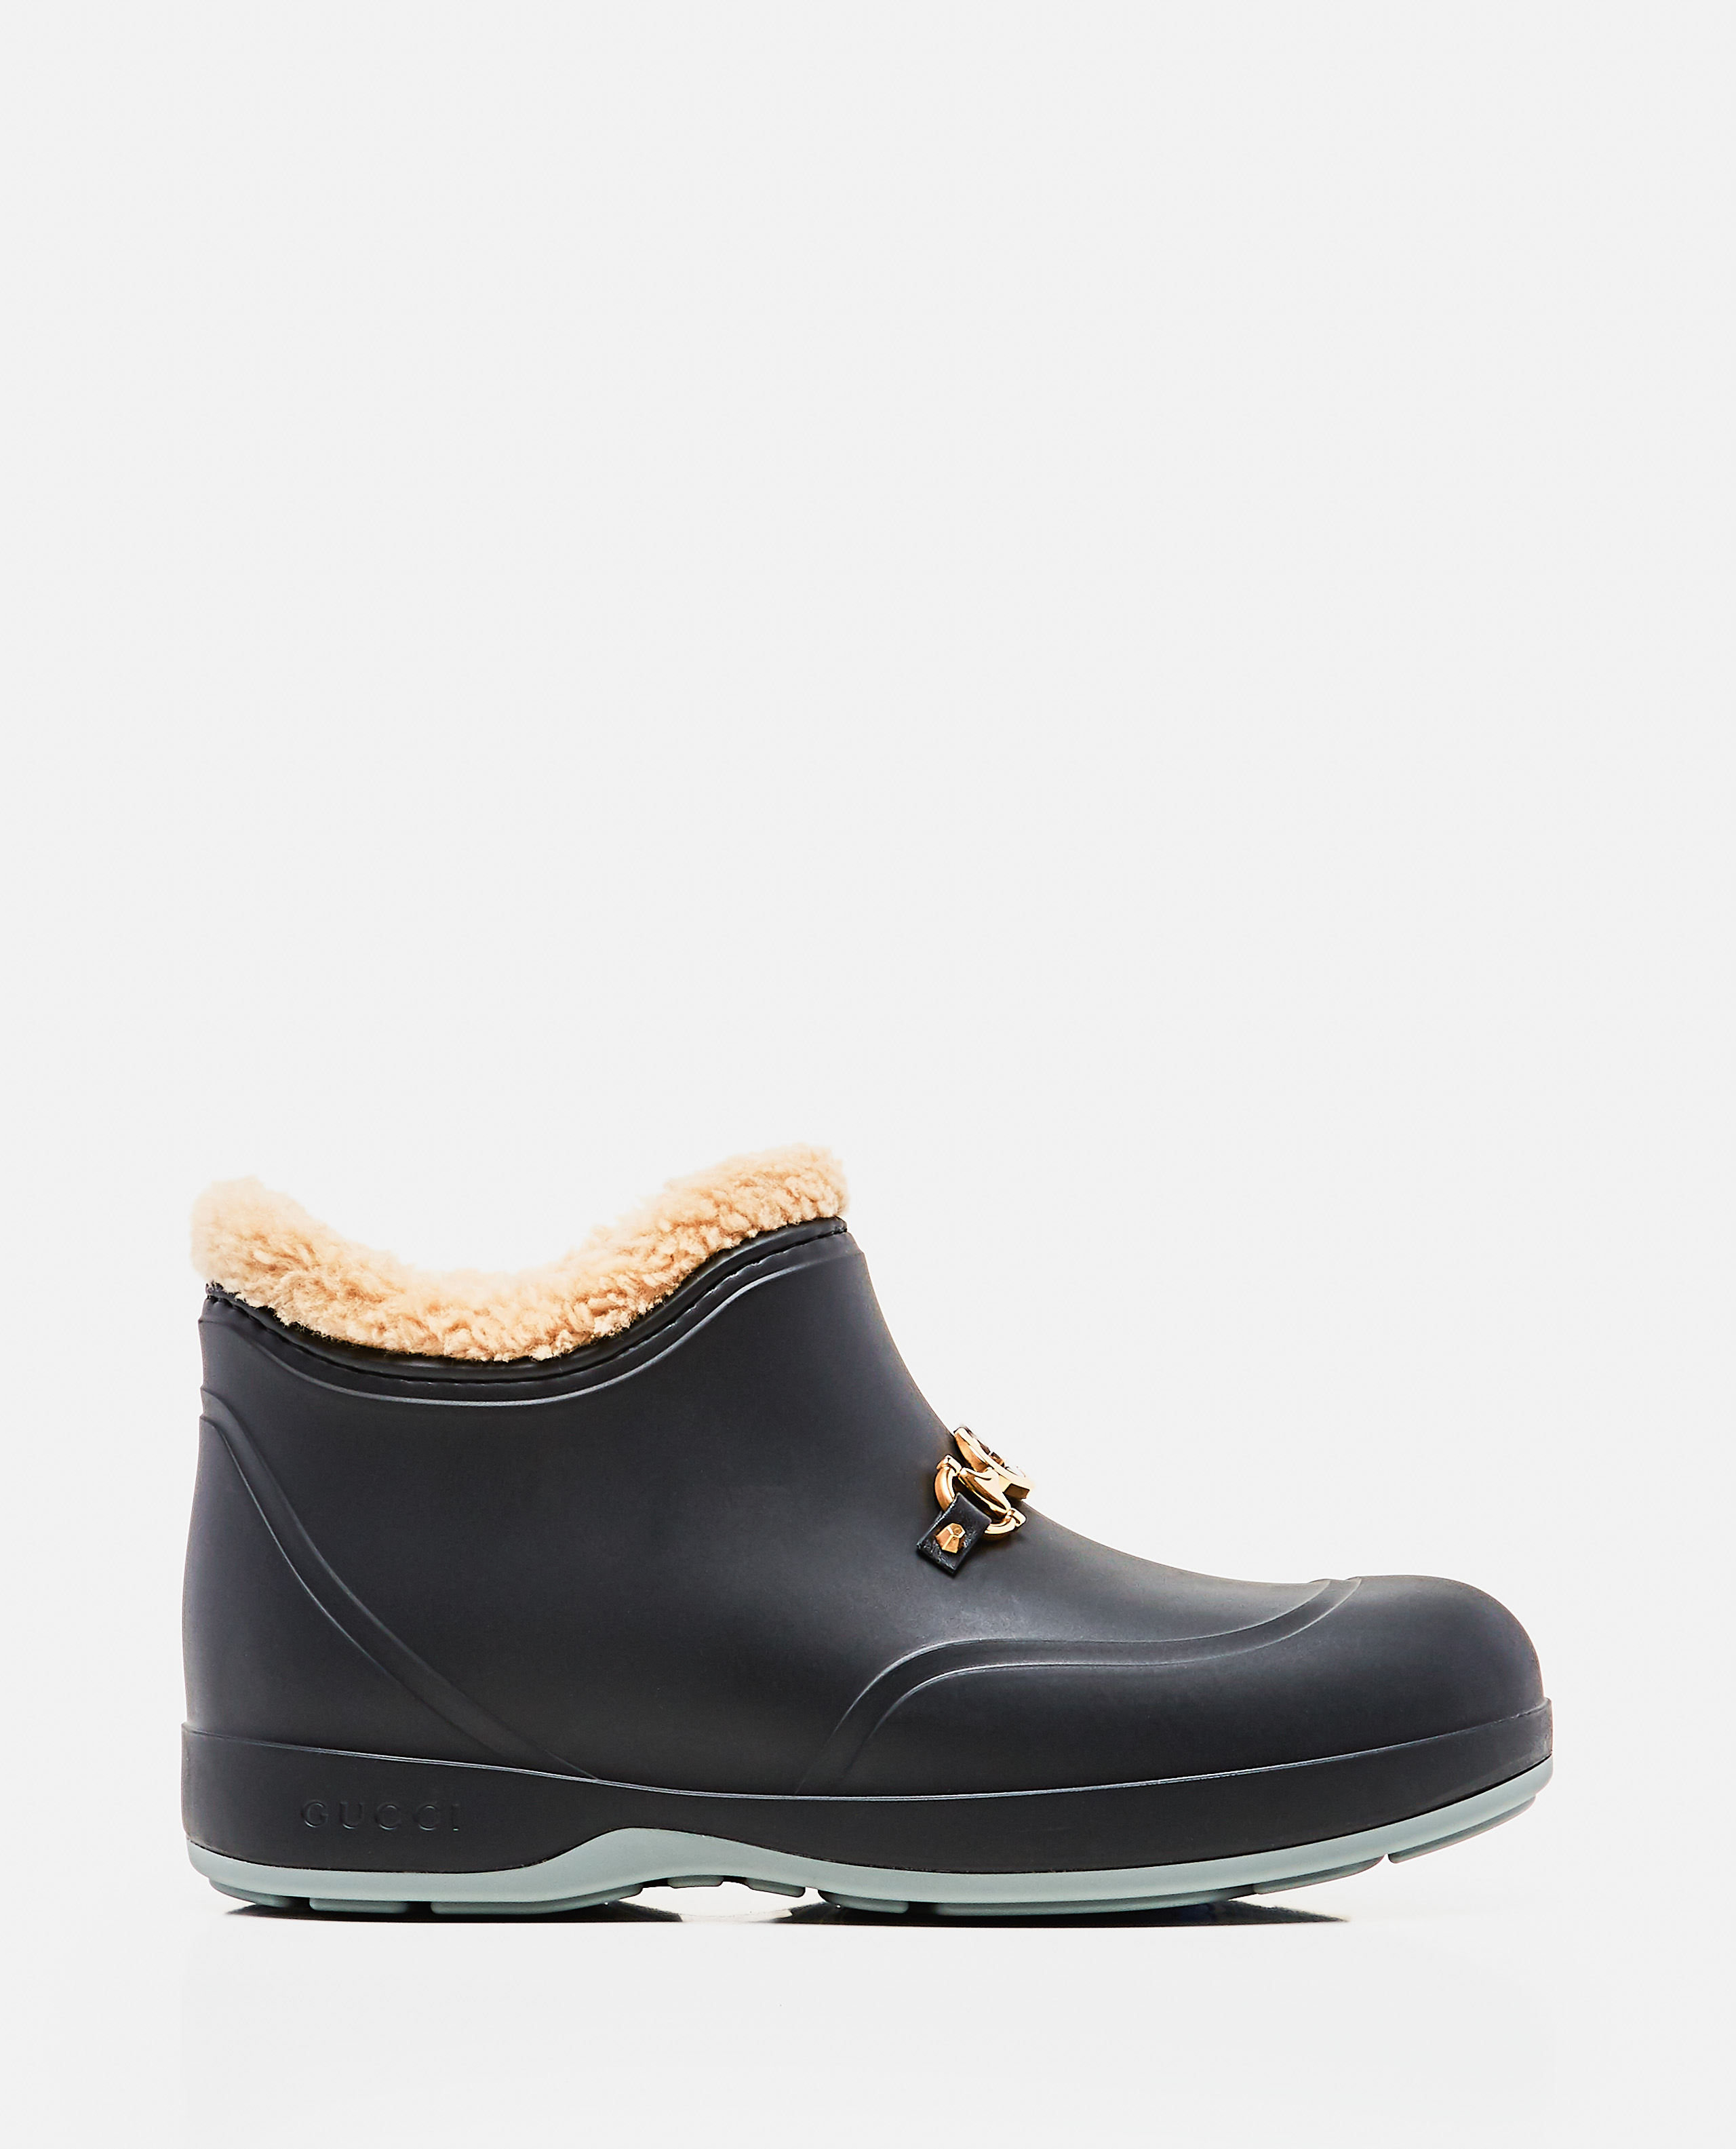 Mens ankle boot with Horsebit